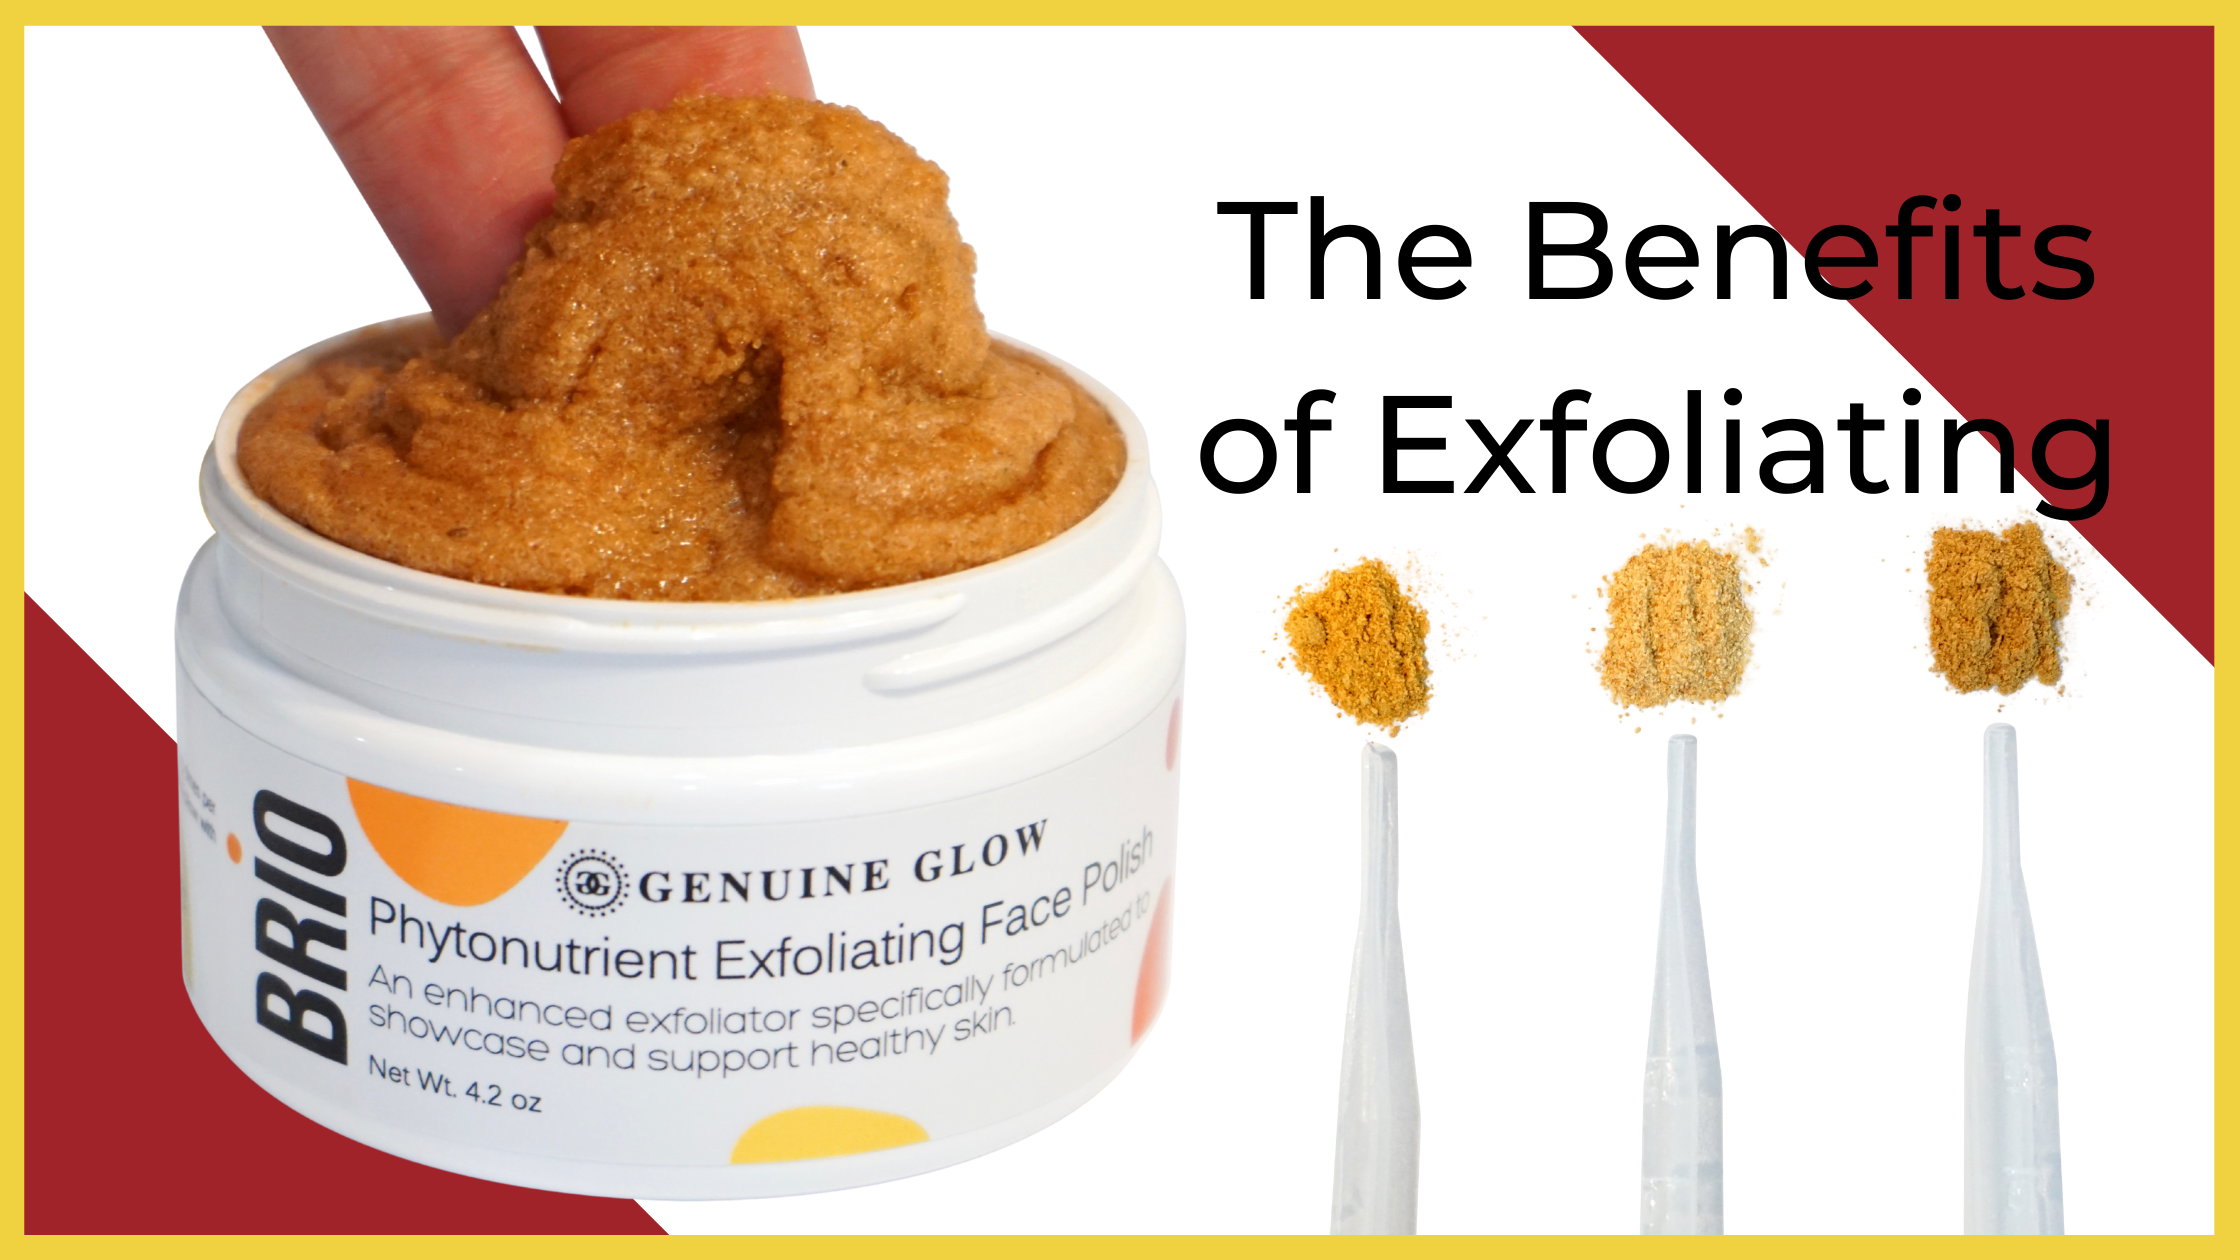 The Benefits of Exfoliating